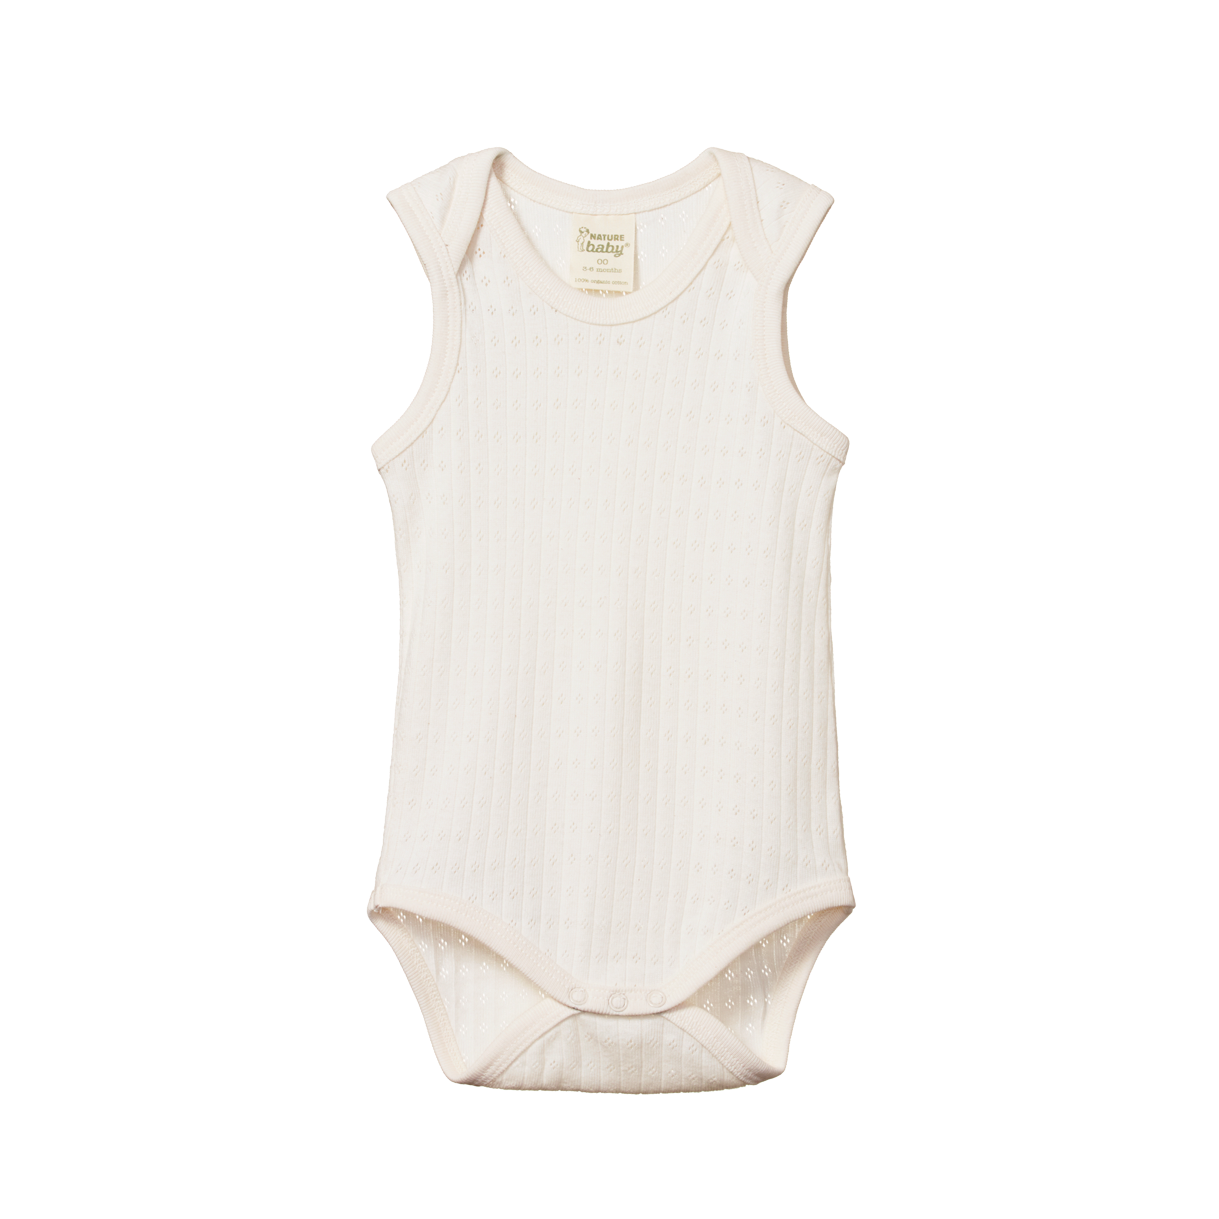 Nature Baby Pointelle Singlet Bodysuit in Natural